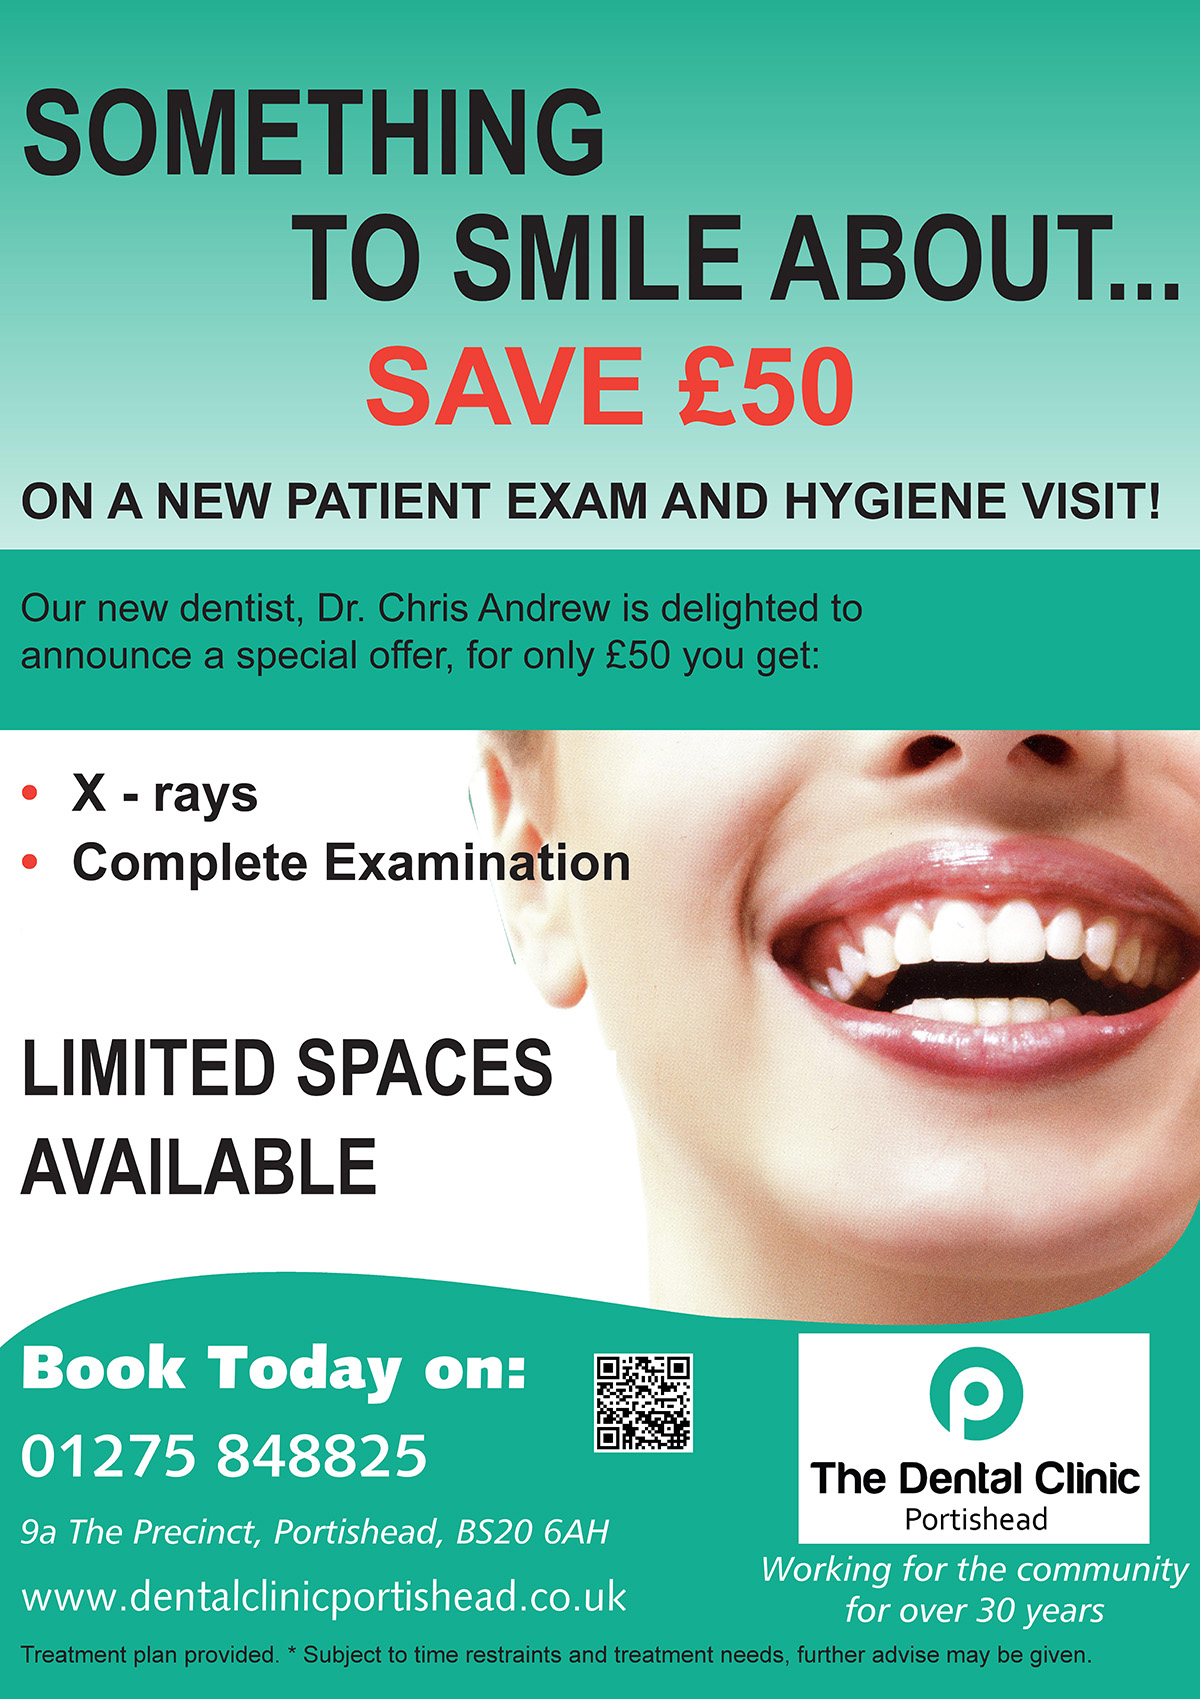 The Dental Clinic Portishead Offers